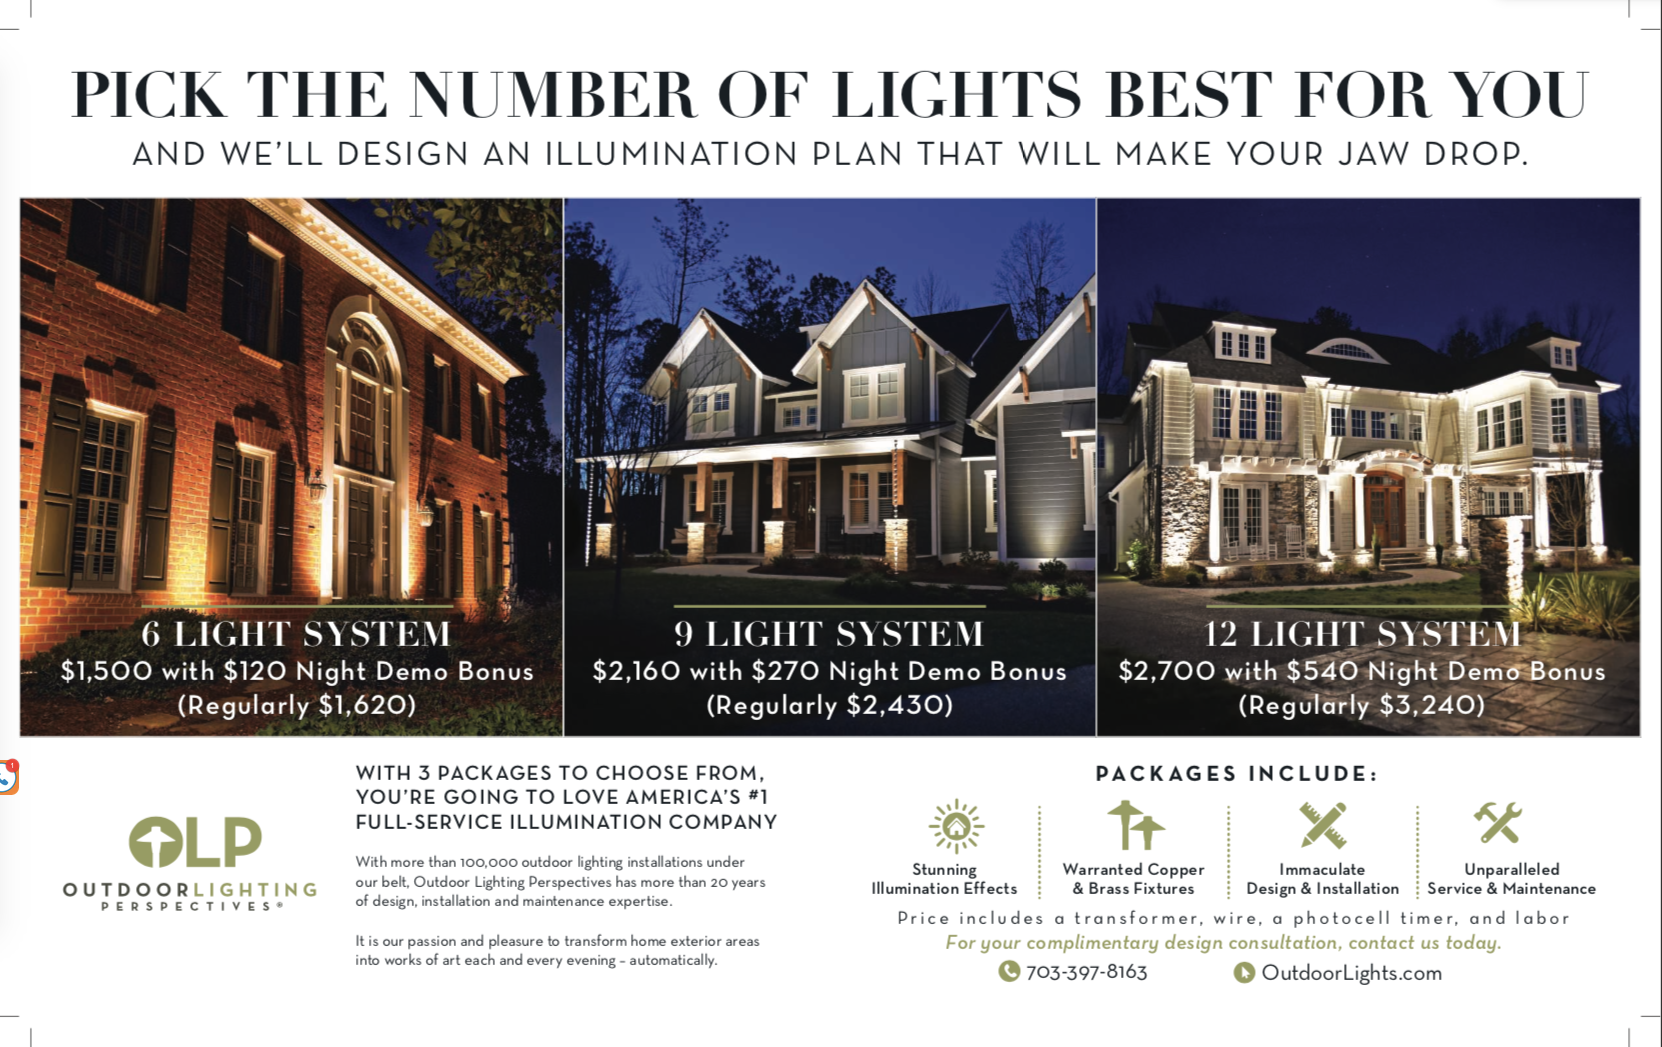 Outdoor lighting perspectives of northern virginia is your professional exterior lighting company our technicians custom design install and maintain